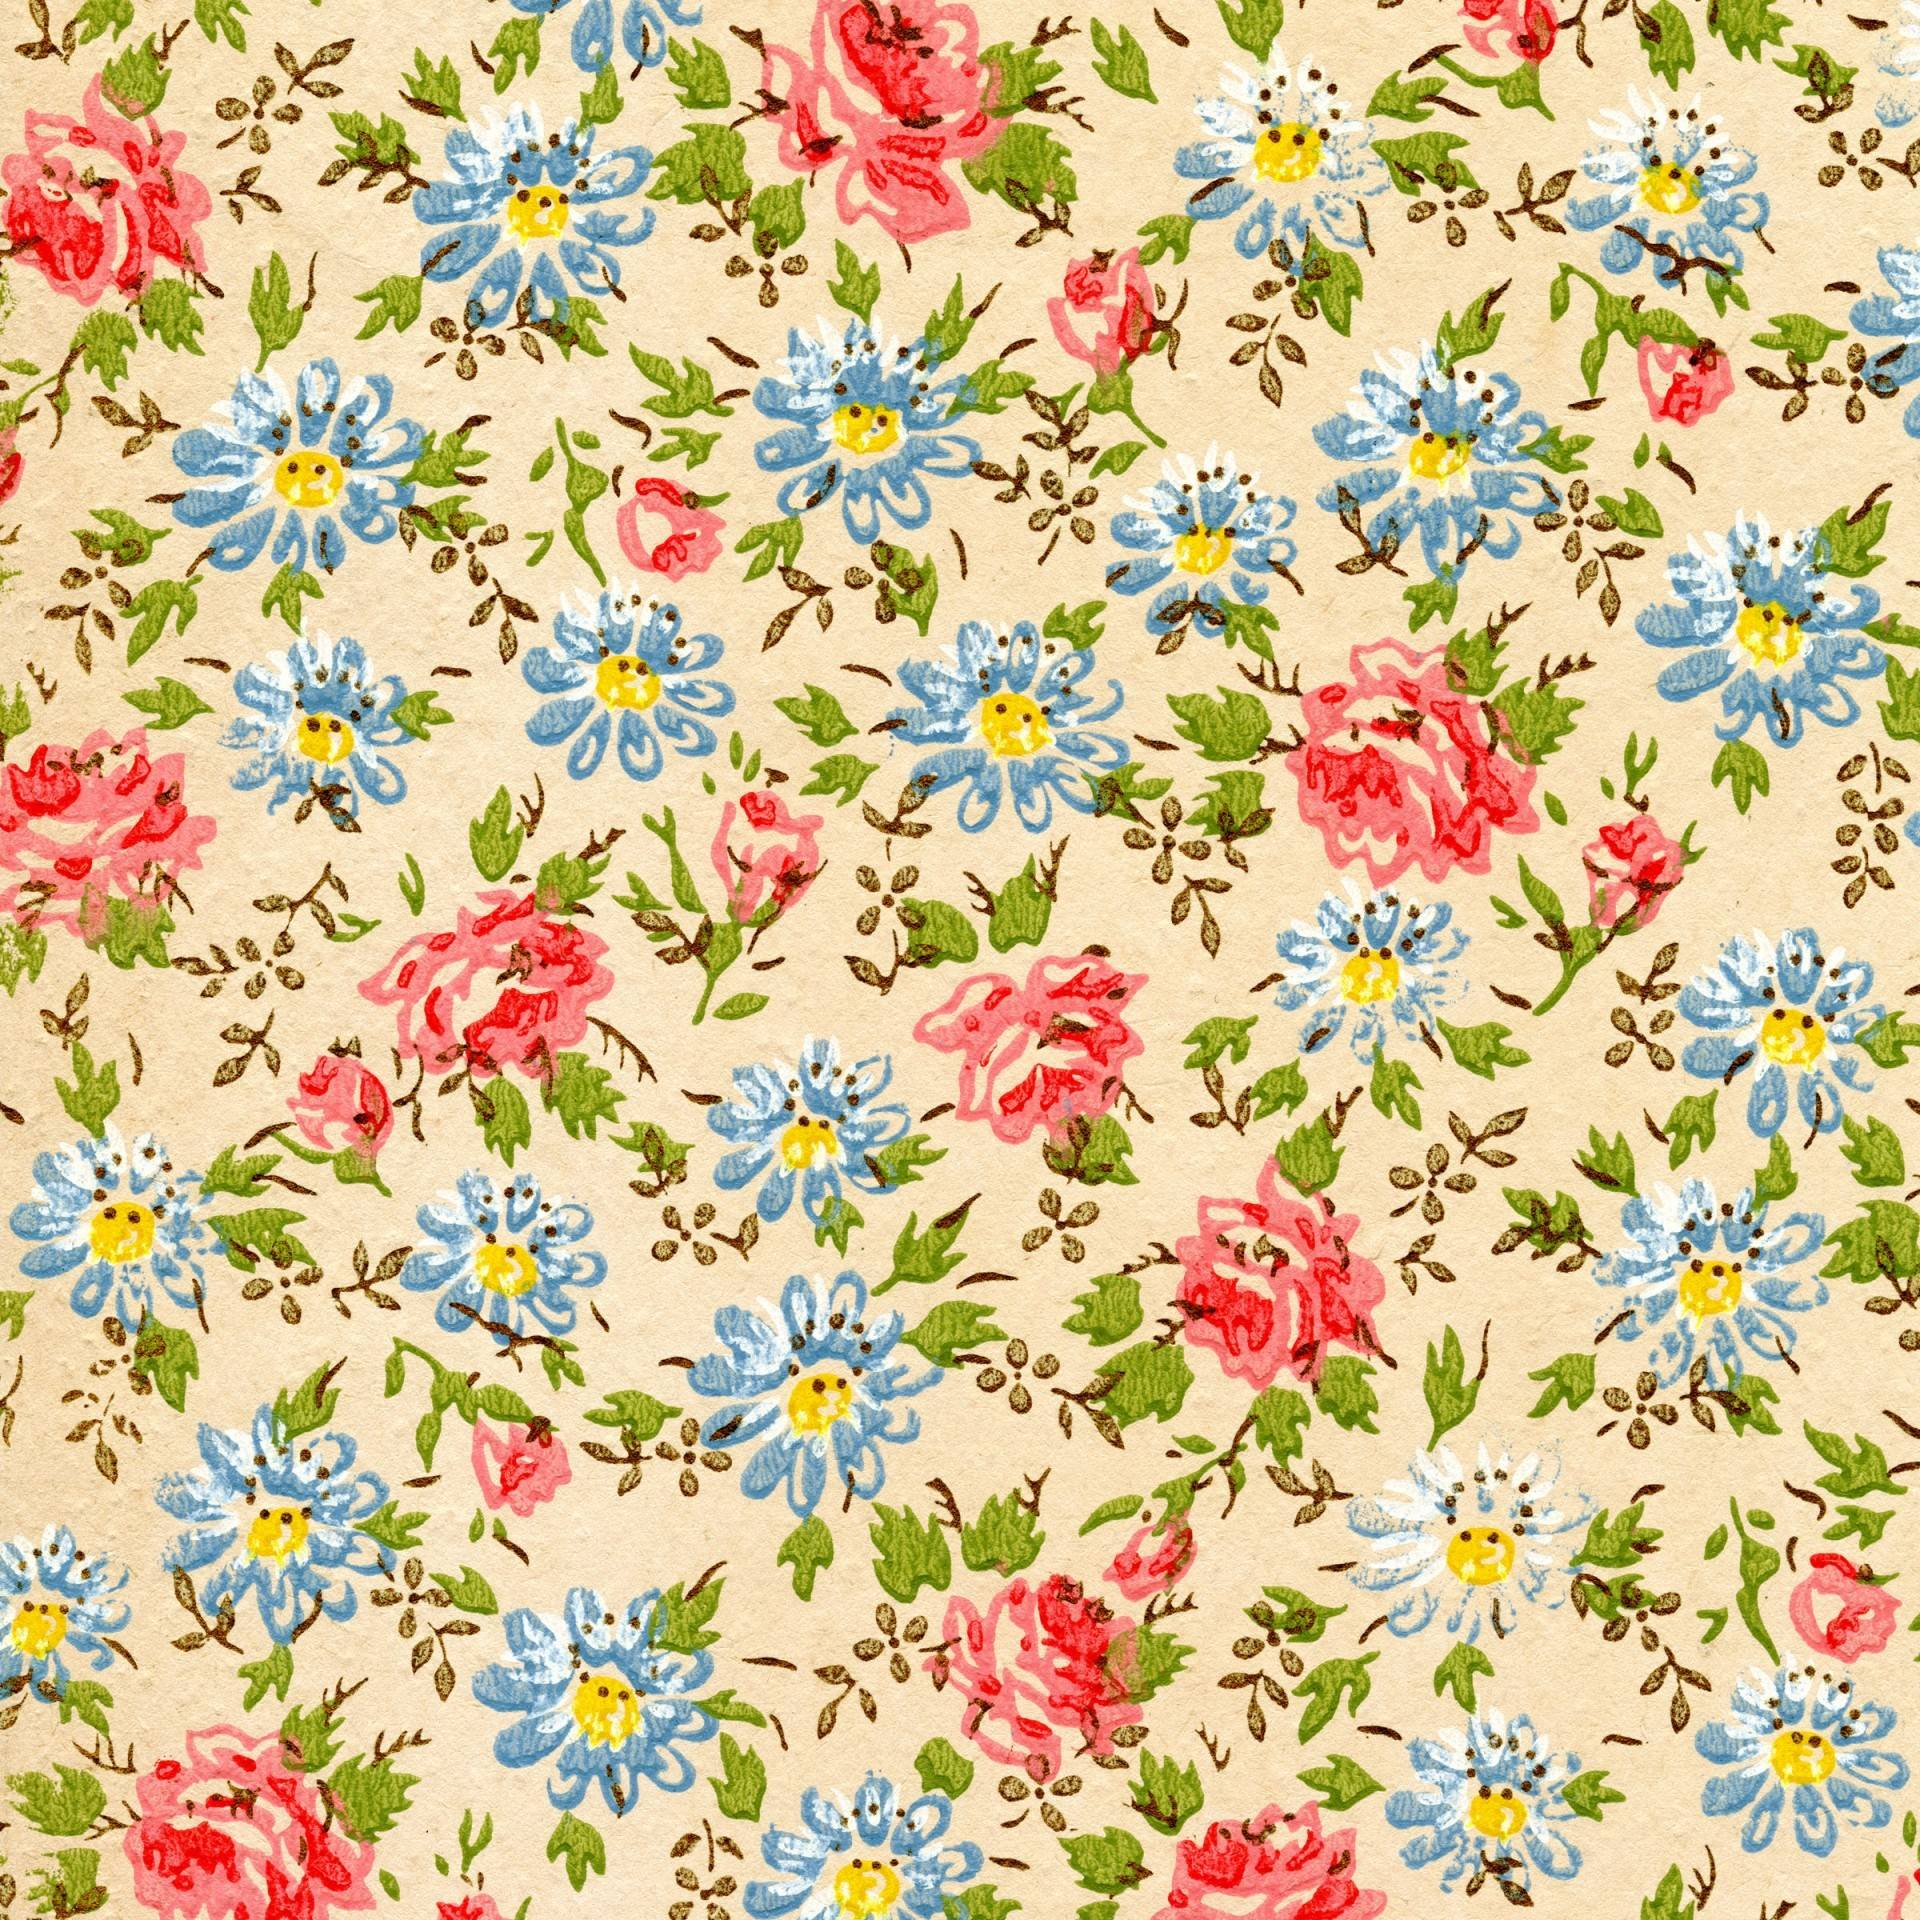 Vintage Flower Wallpaper For Iphone